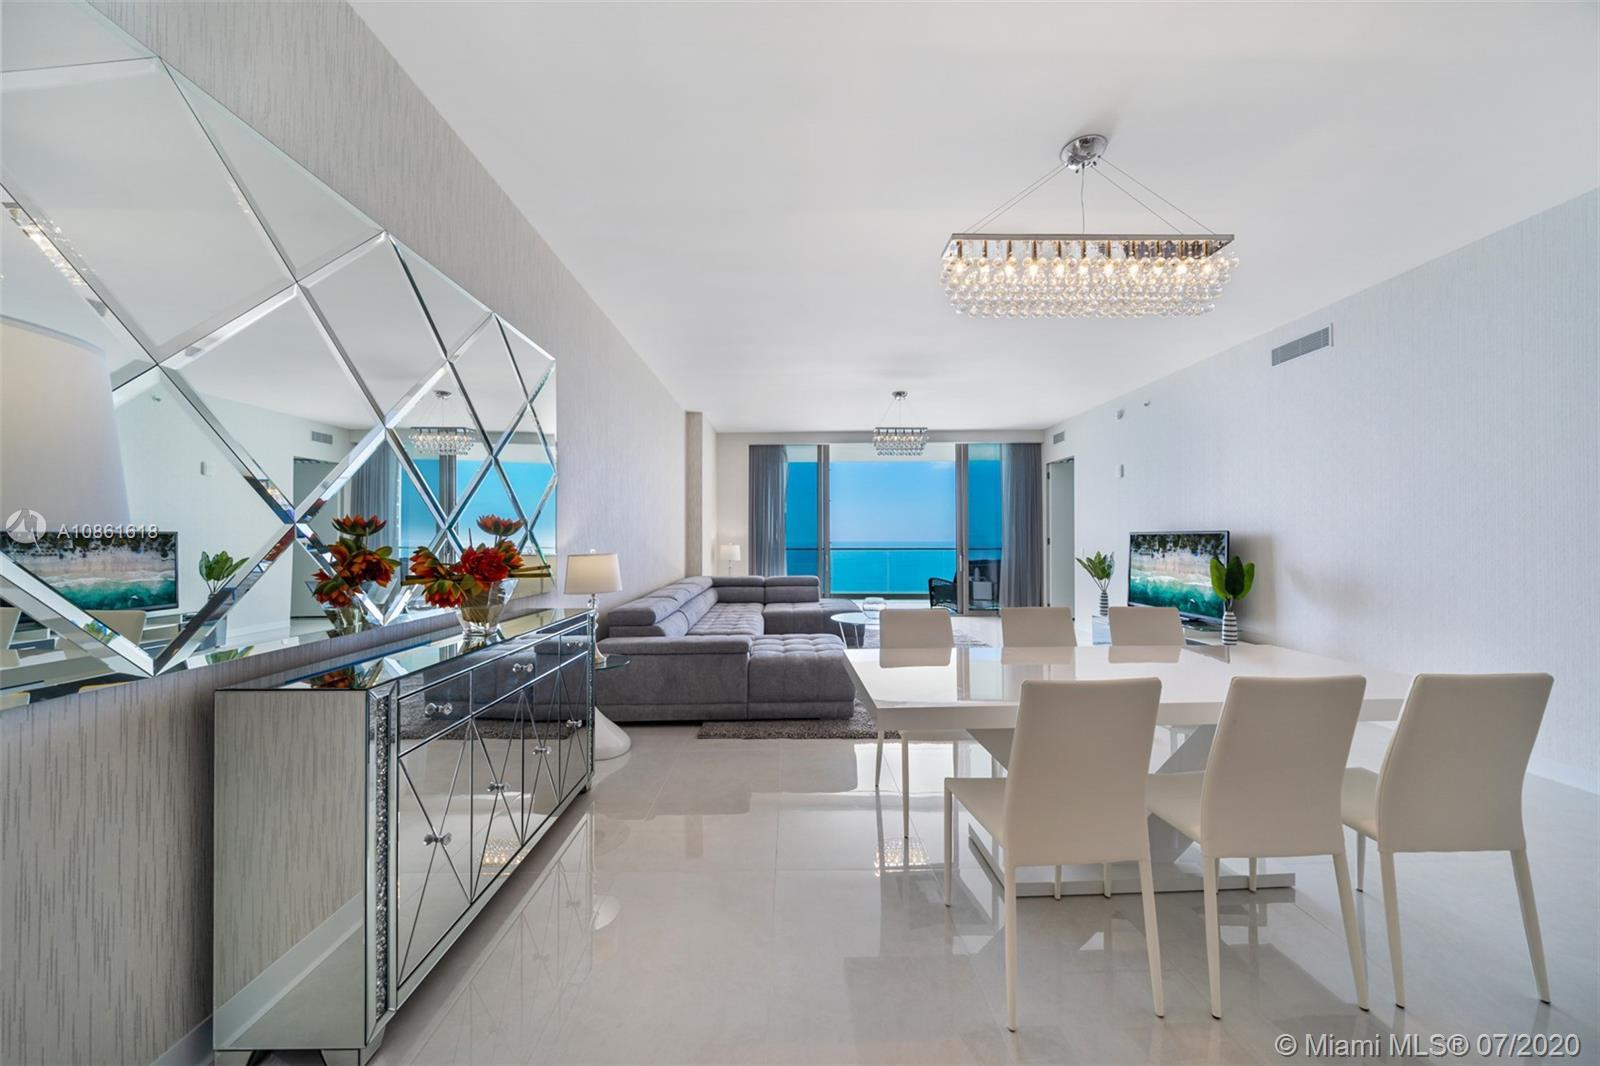 3-Bedrooms + Den / 3.5-Bathrooms (2716sqft interior + 756 balconies) FULLY FINISHED & FURNISHED. TUR